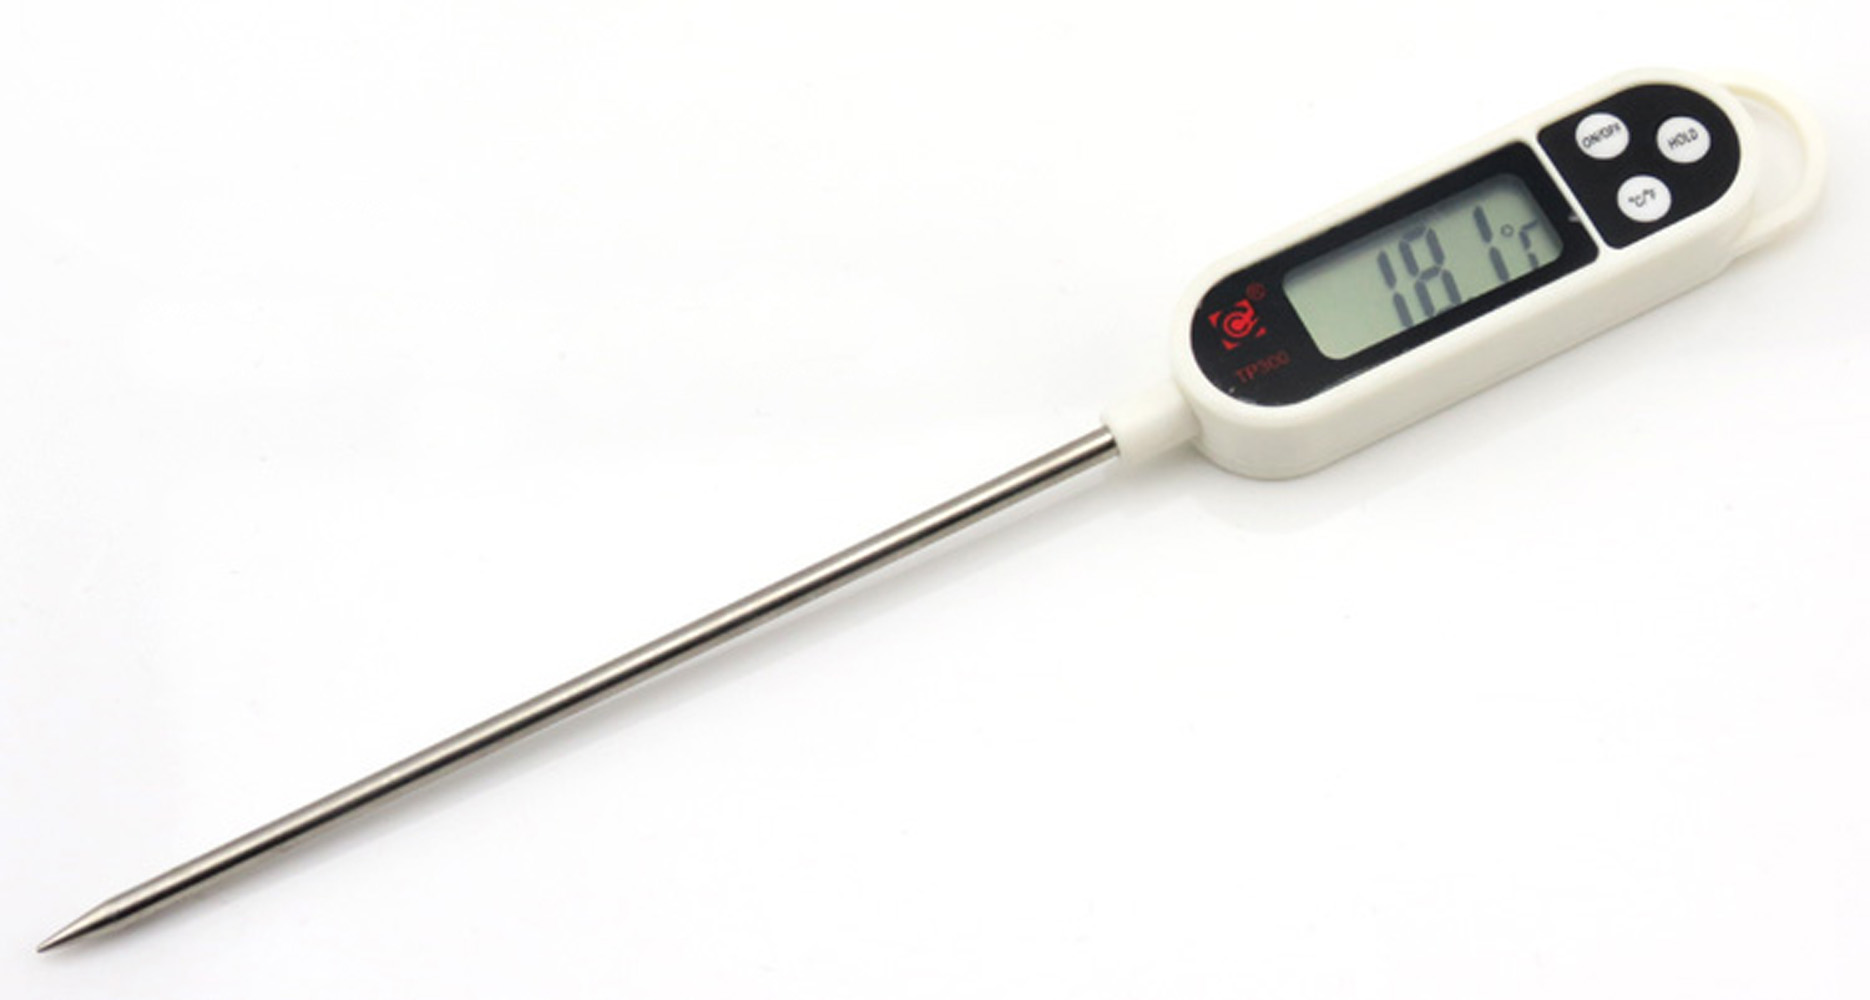 Food BBQ Meat Probe Digital Thermometer KT-300